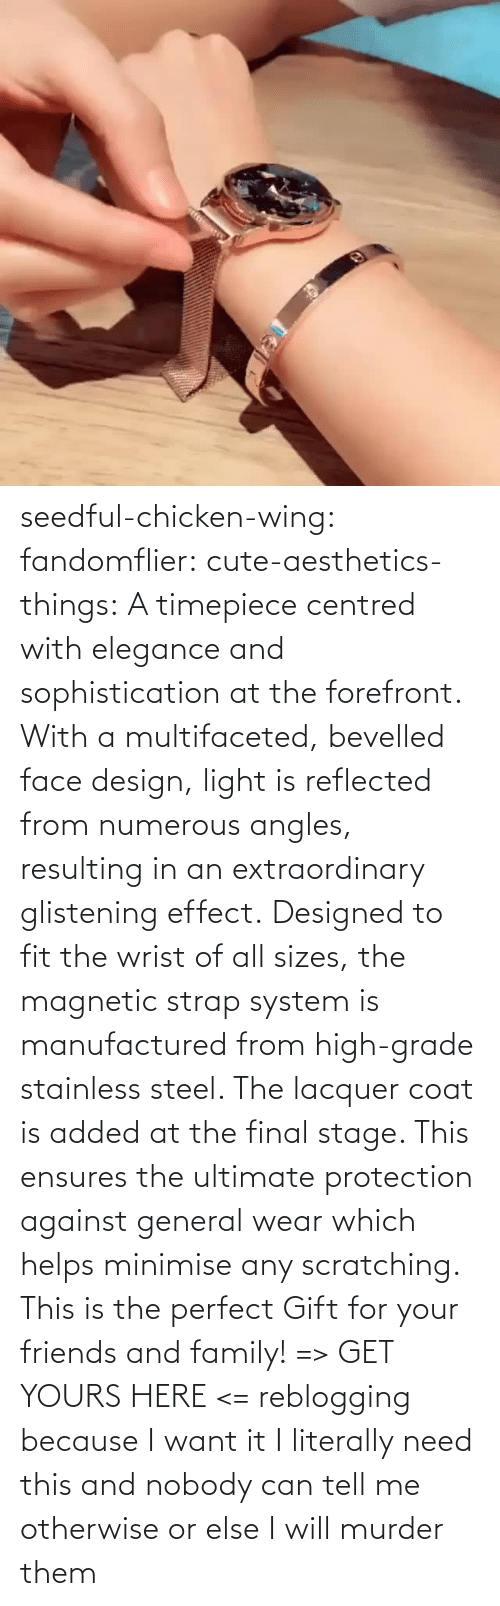 With: seedful-chicken-wing: fandomflier:  cute-aesthetics-things:   A timepiece centred with elegance and sophistication at the forefront. With a multifaceted, bevelled face design, light is reflected from numerous angles, resulting in an extraordinary glistening effect. Designed to fit the wrist of all sizes, the magnetic strap system is manufactured from high-grade stainless steel. The lacquer coat is added at the final stage. This ensures the ultimate protection against general wear which helps minimise any scratching. This is the perfect Gift for your friends and family! => GET YOURS HERE <=   reblogging because I want it  I literally need this and nobody can tell me otherwise or else I will murder them